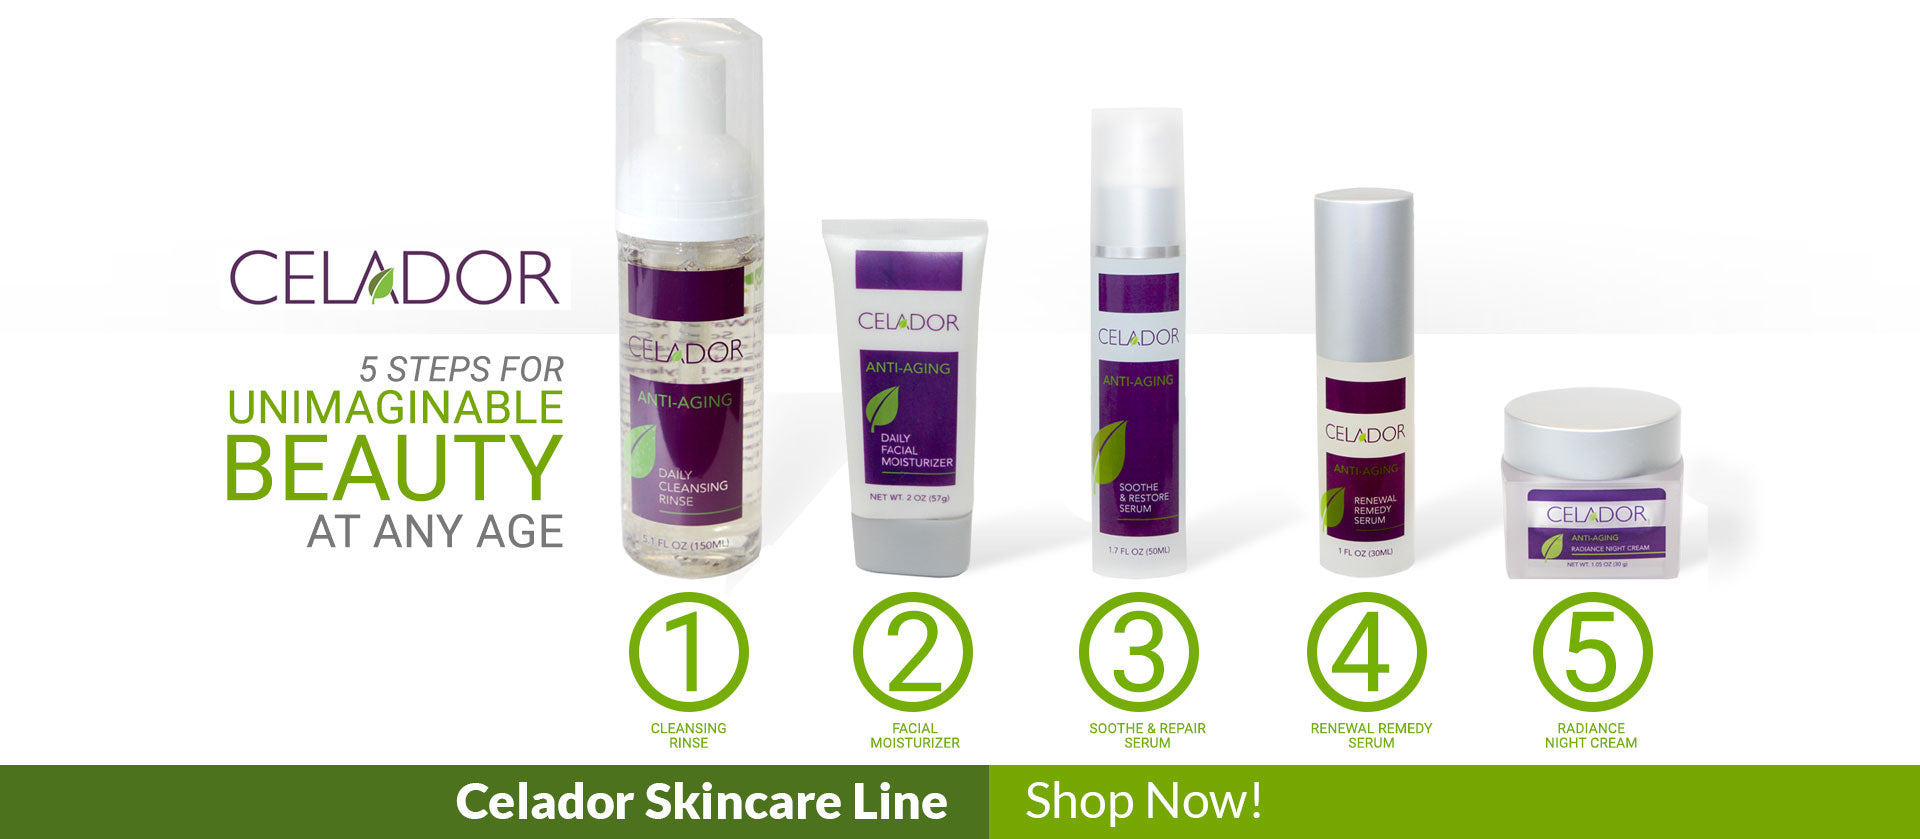 Celador Skin Care Line 5 Steps for Imaginable Beauty at any age. 25% OFF Entire line and free shipping